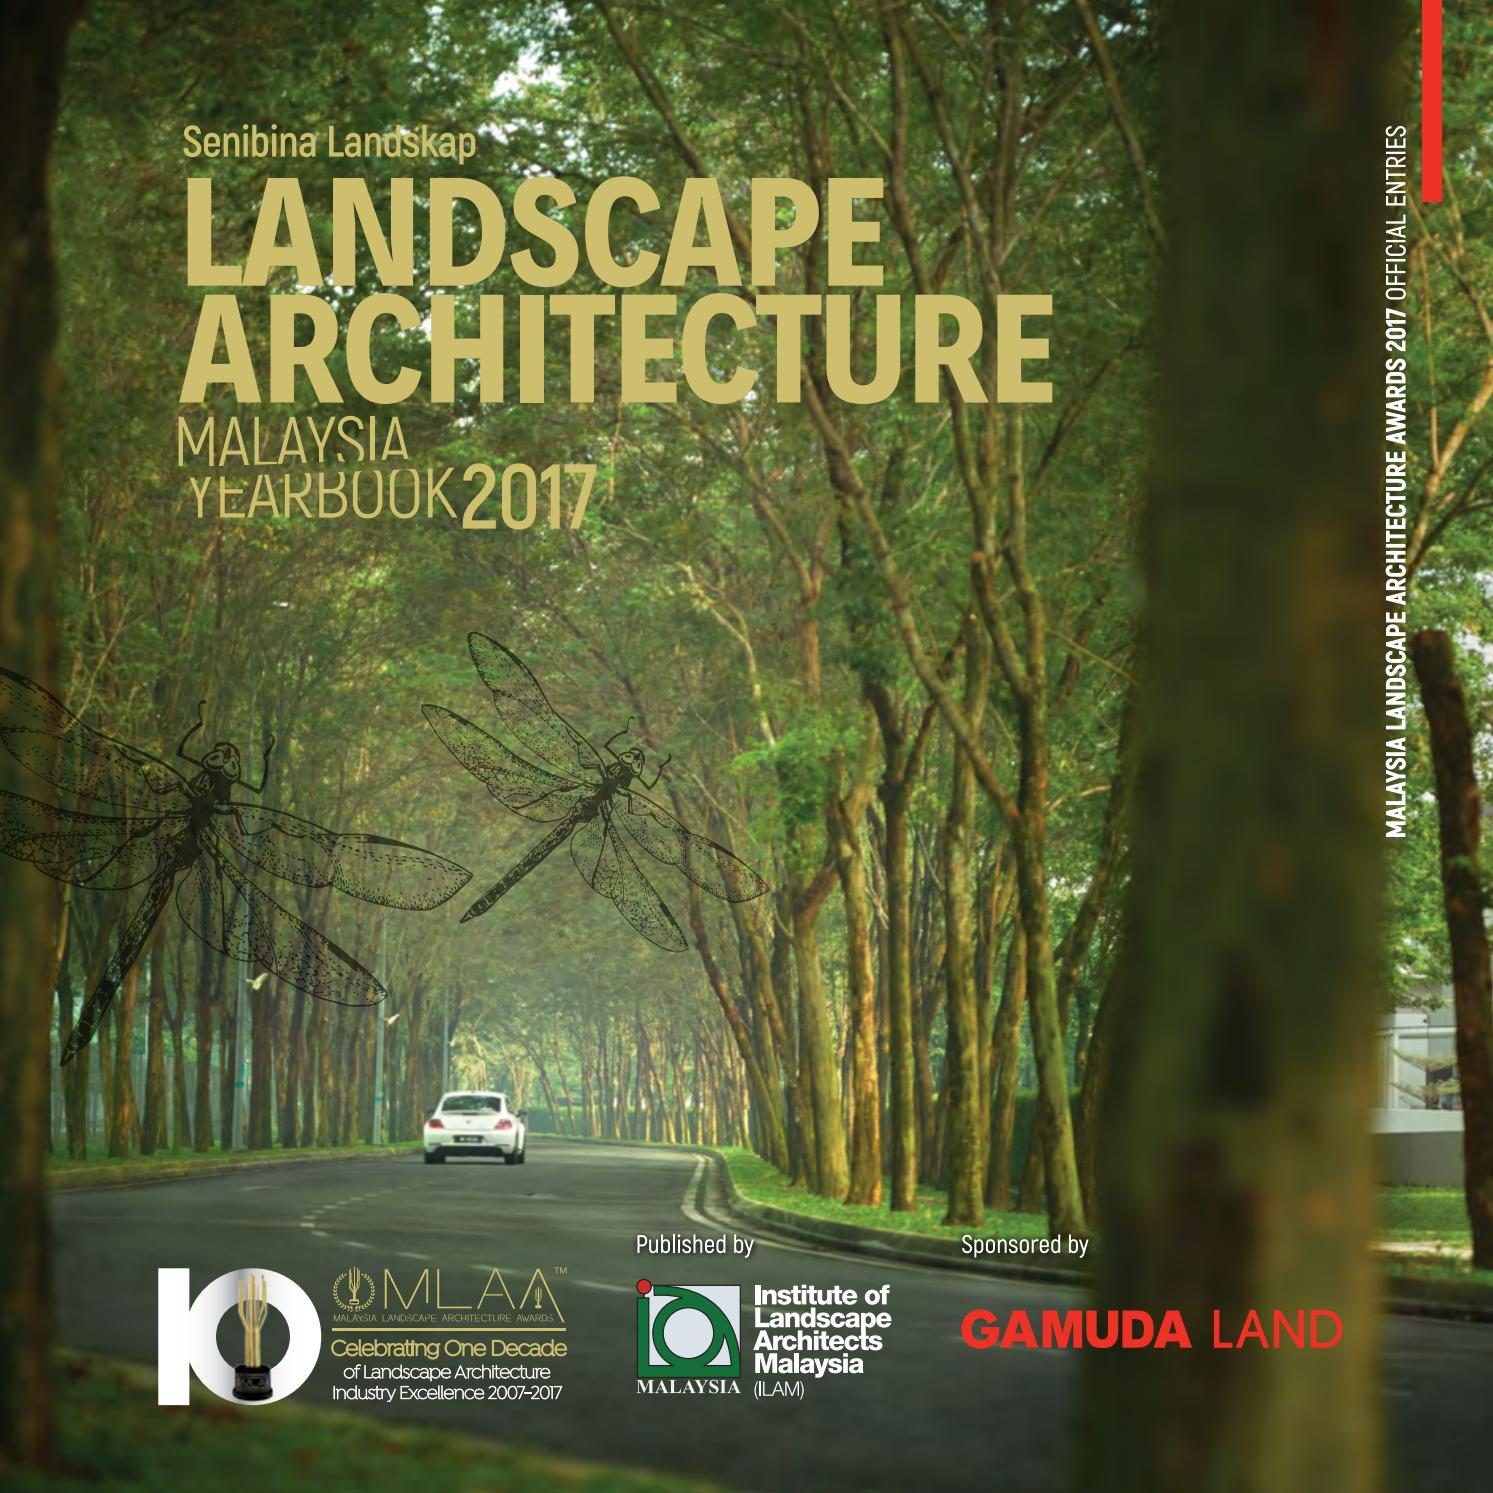 Malaysia Landscape Architecture Yearbook 2017 by Charles Teo - issuu